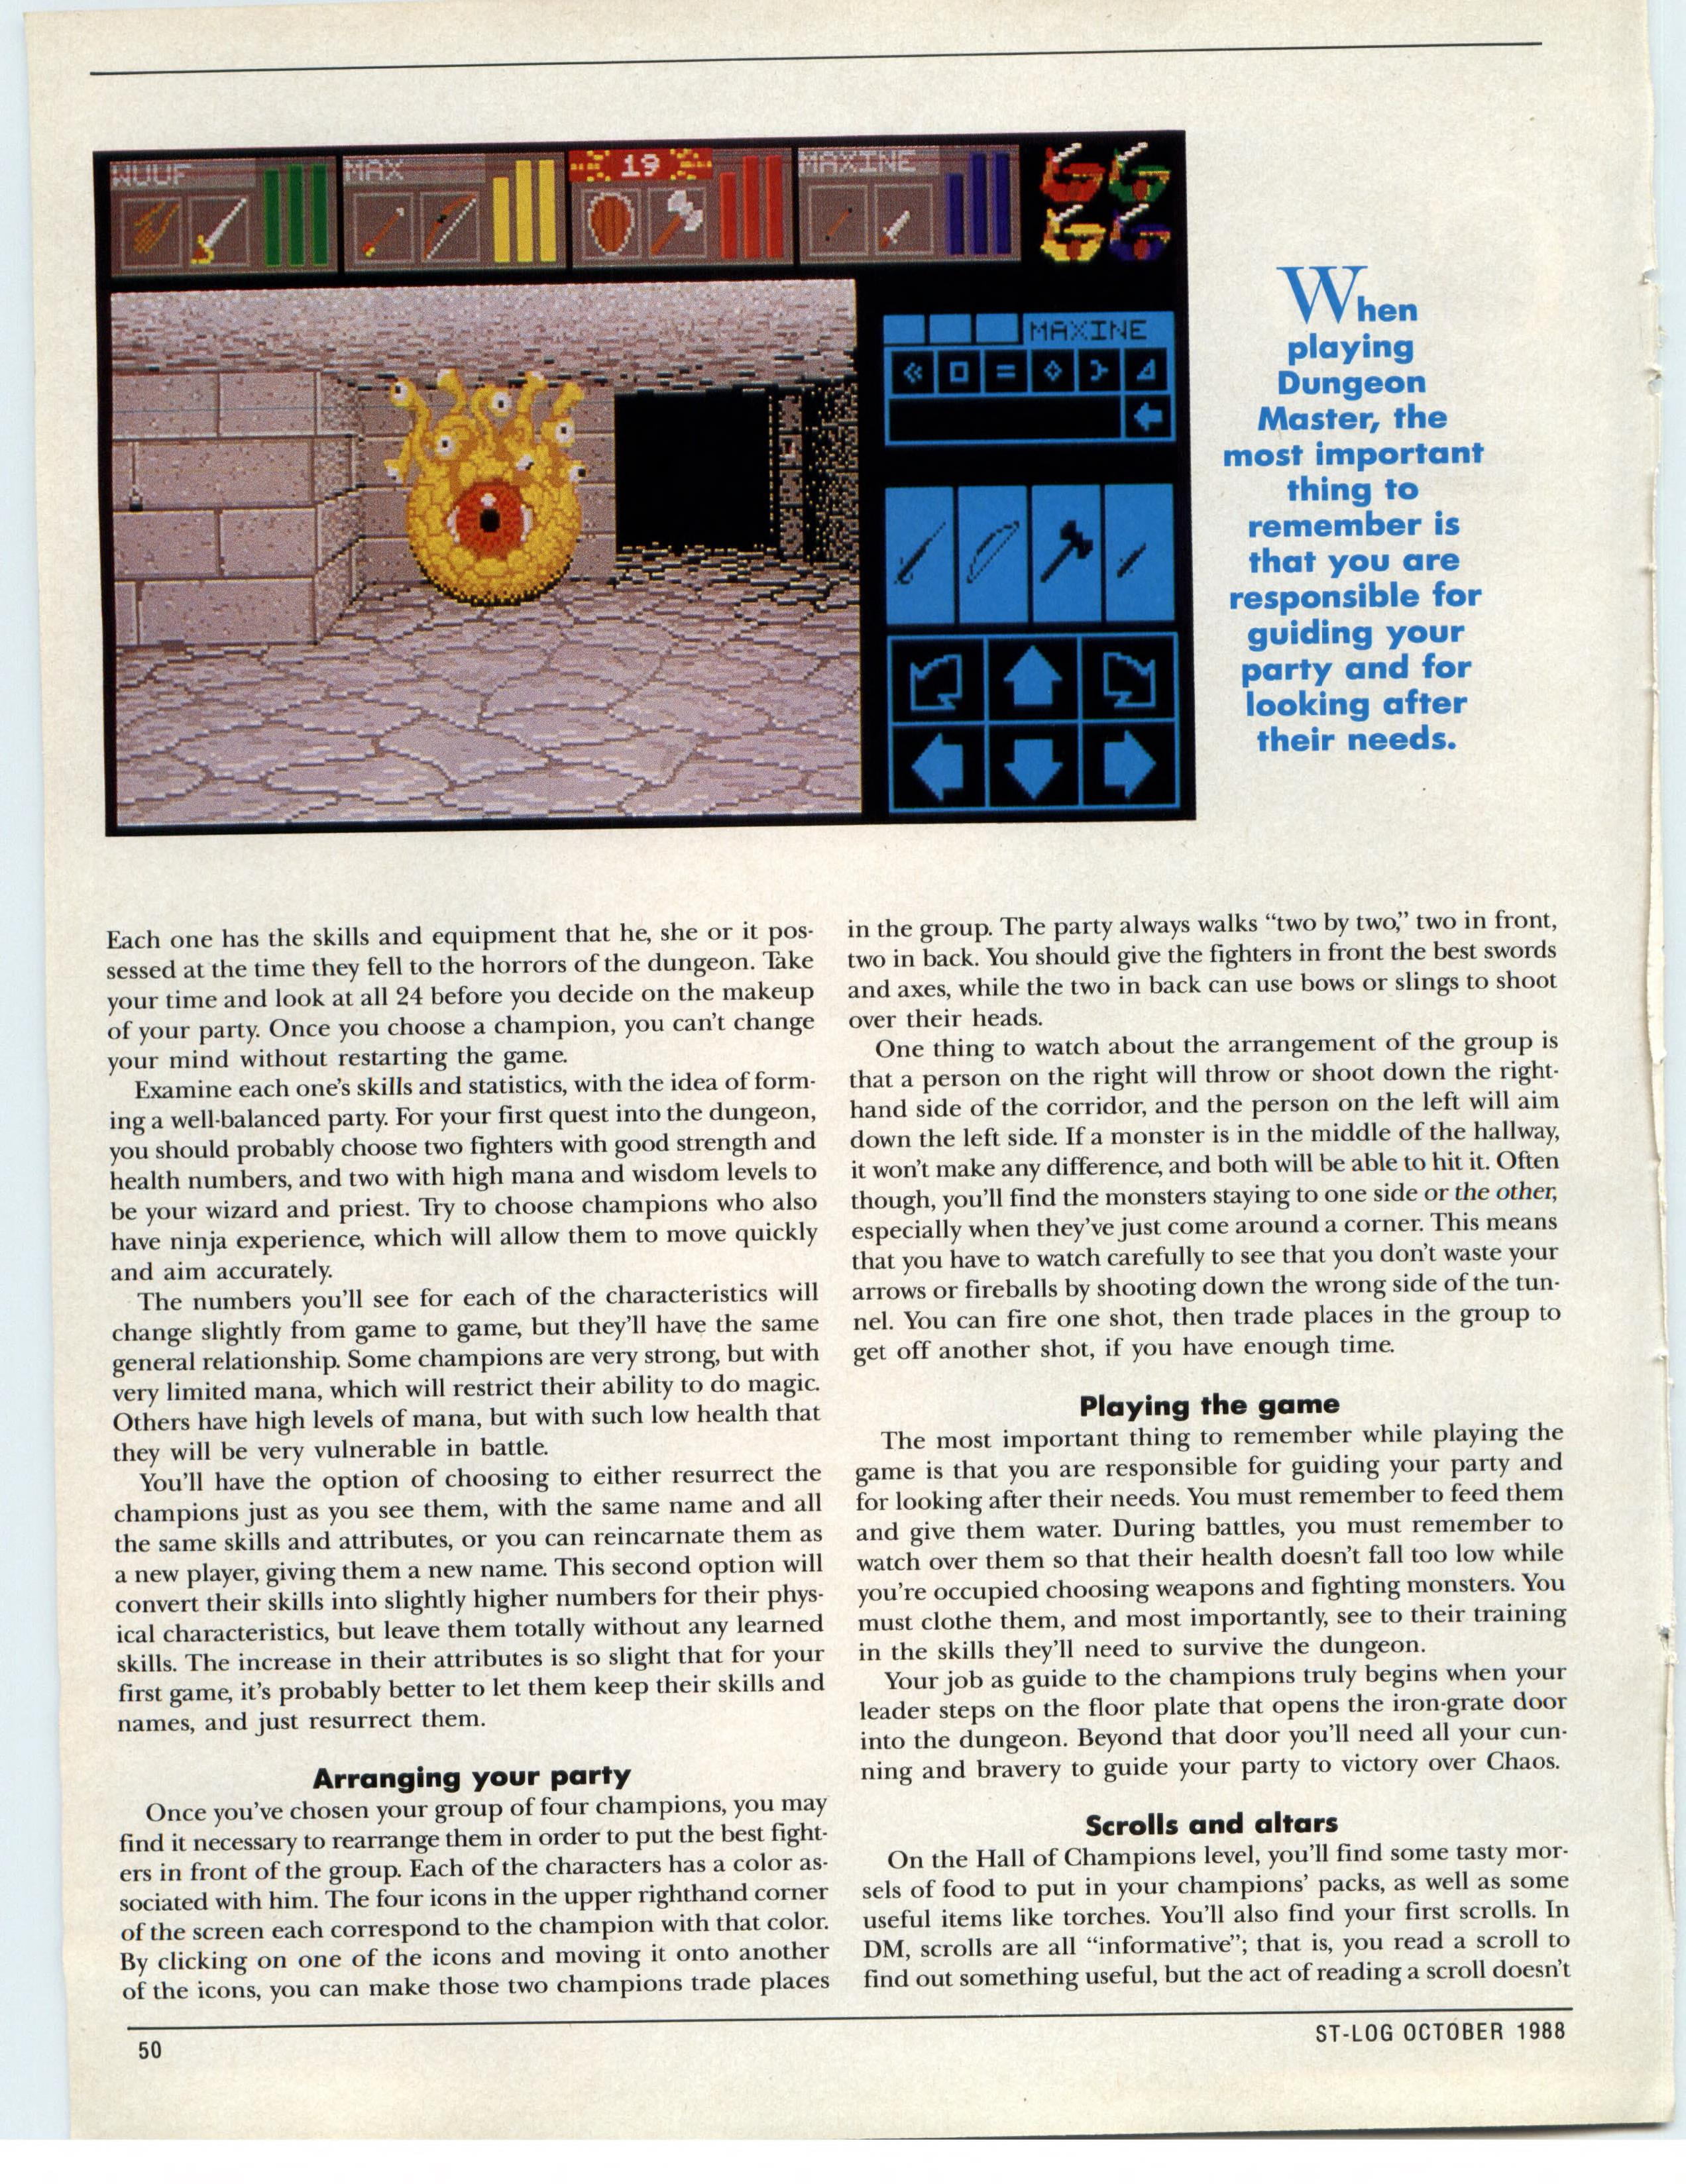 Dungeon Master for Atari ST Guide published in American magazine 'ST-Log', Issue #24 October 1988, Page 50